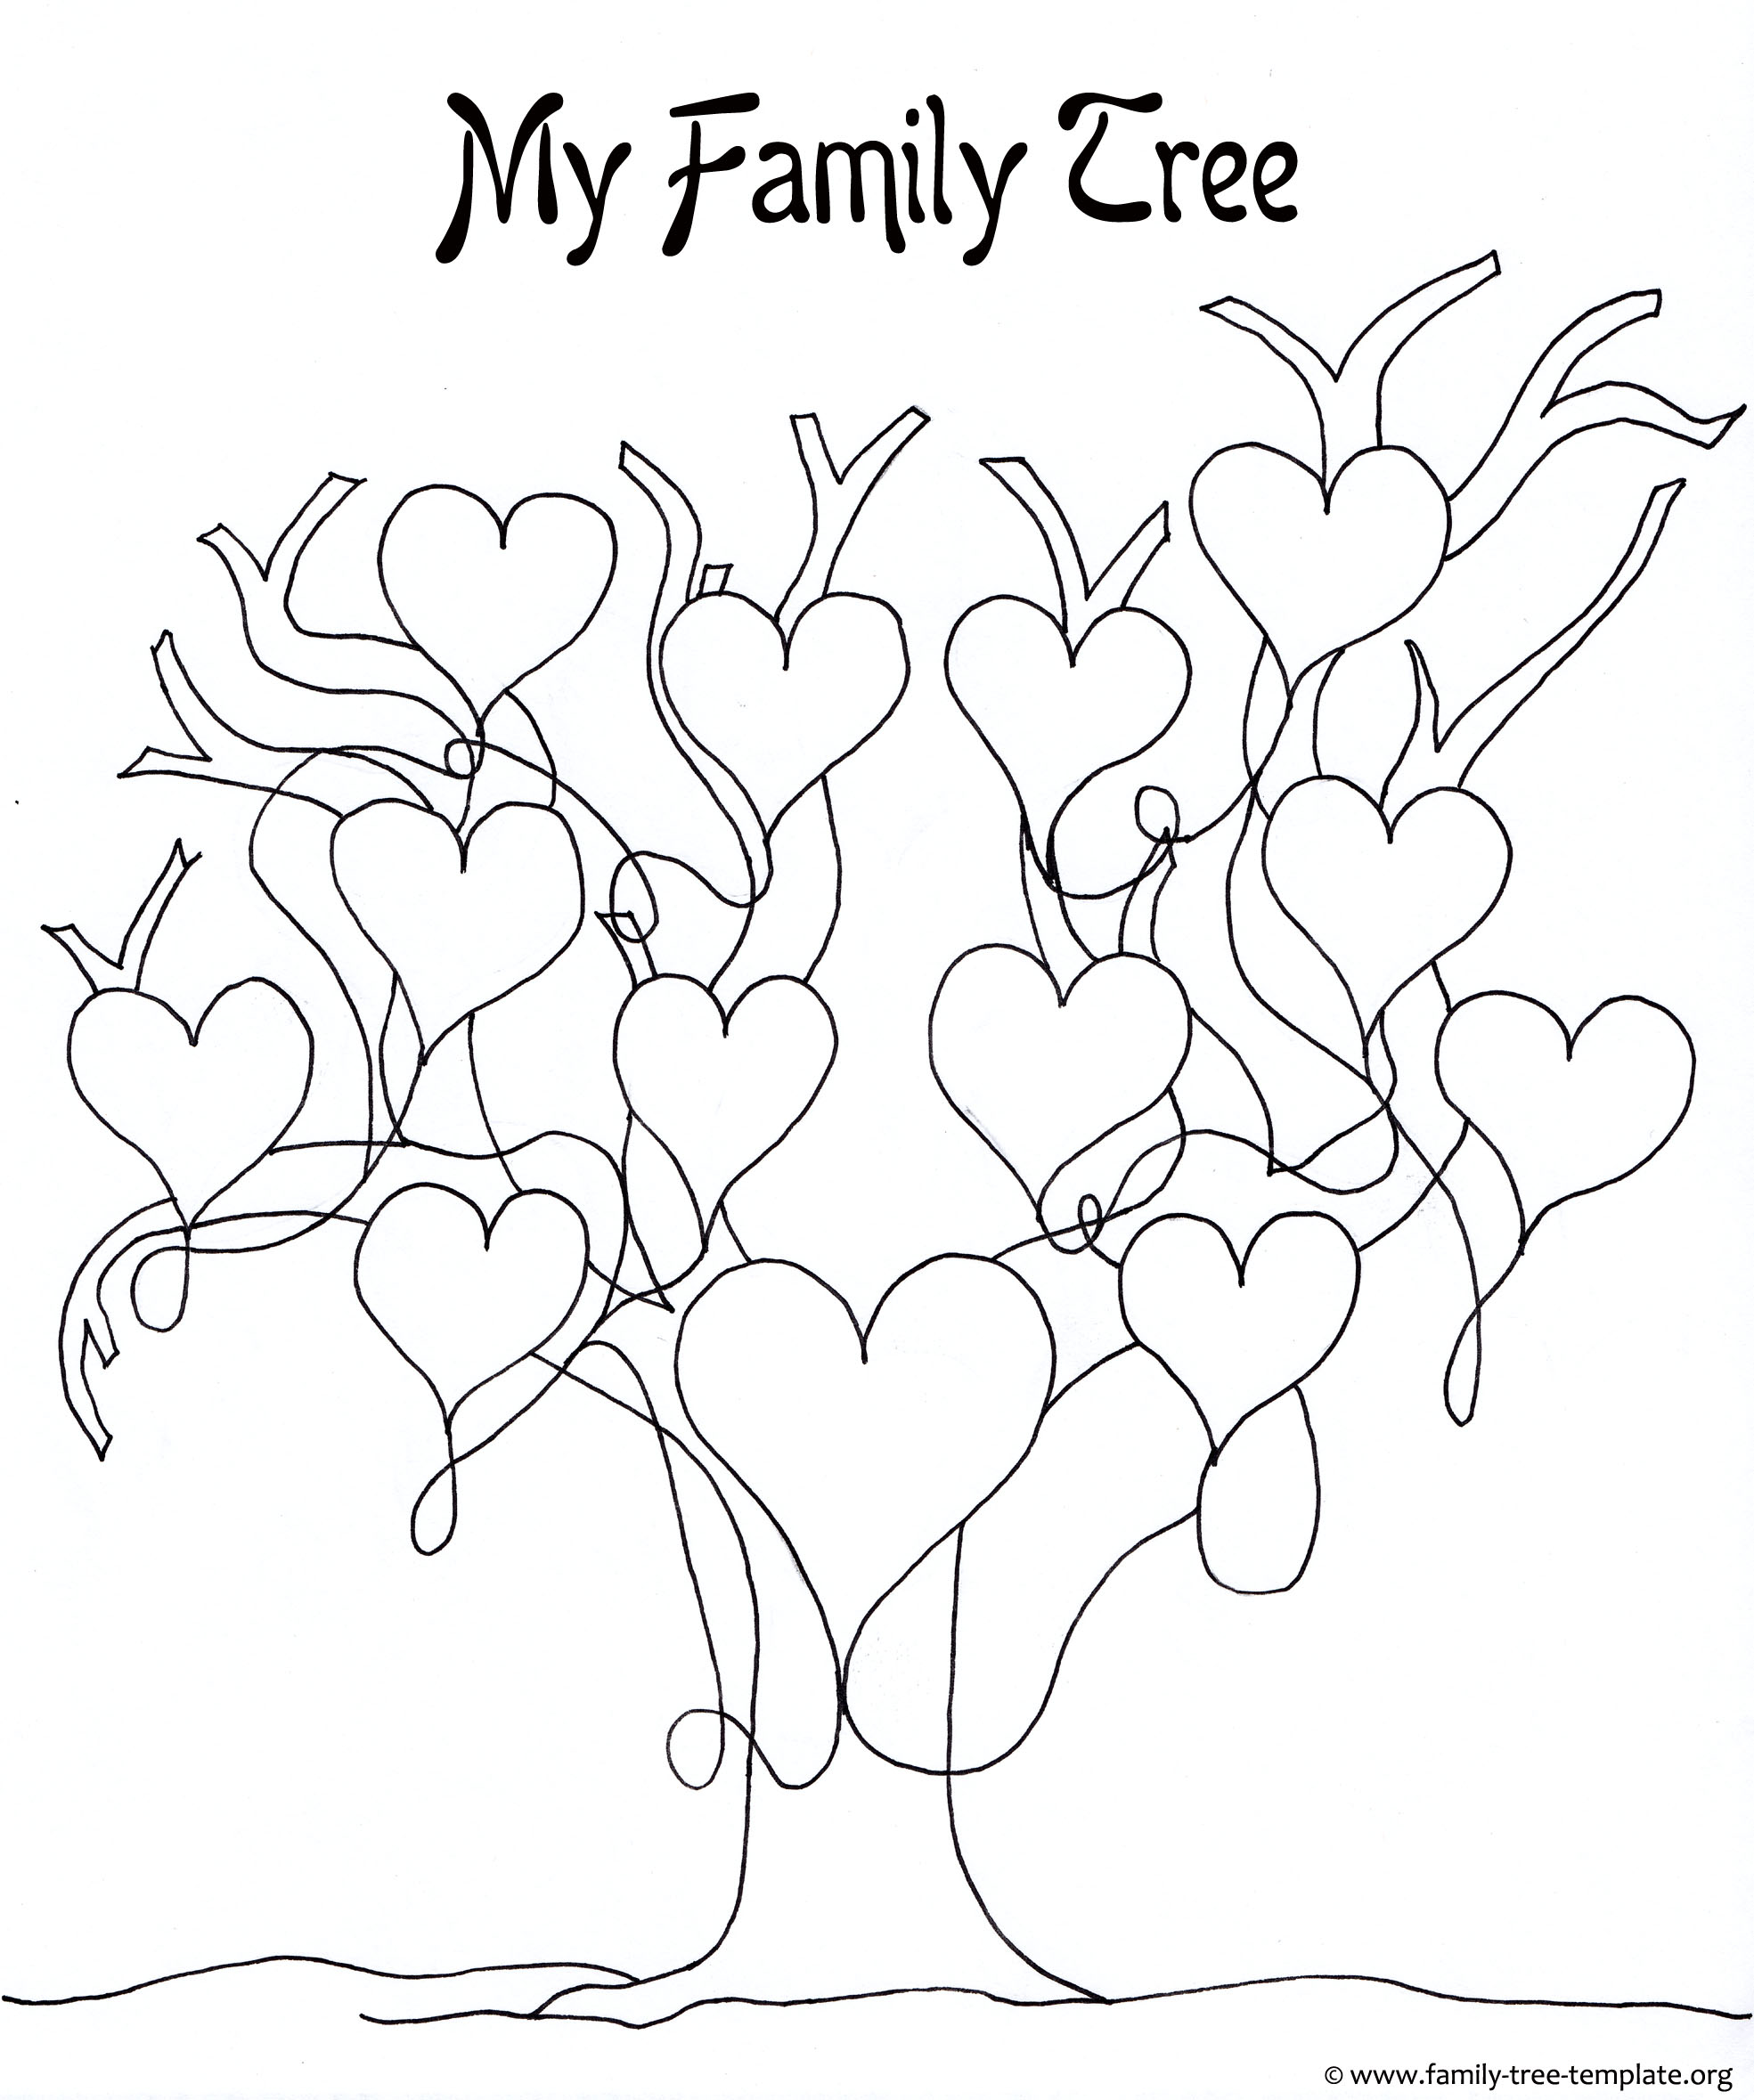 free family tree drawing at getdrawings com free for personal use